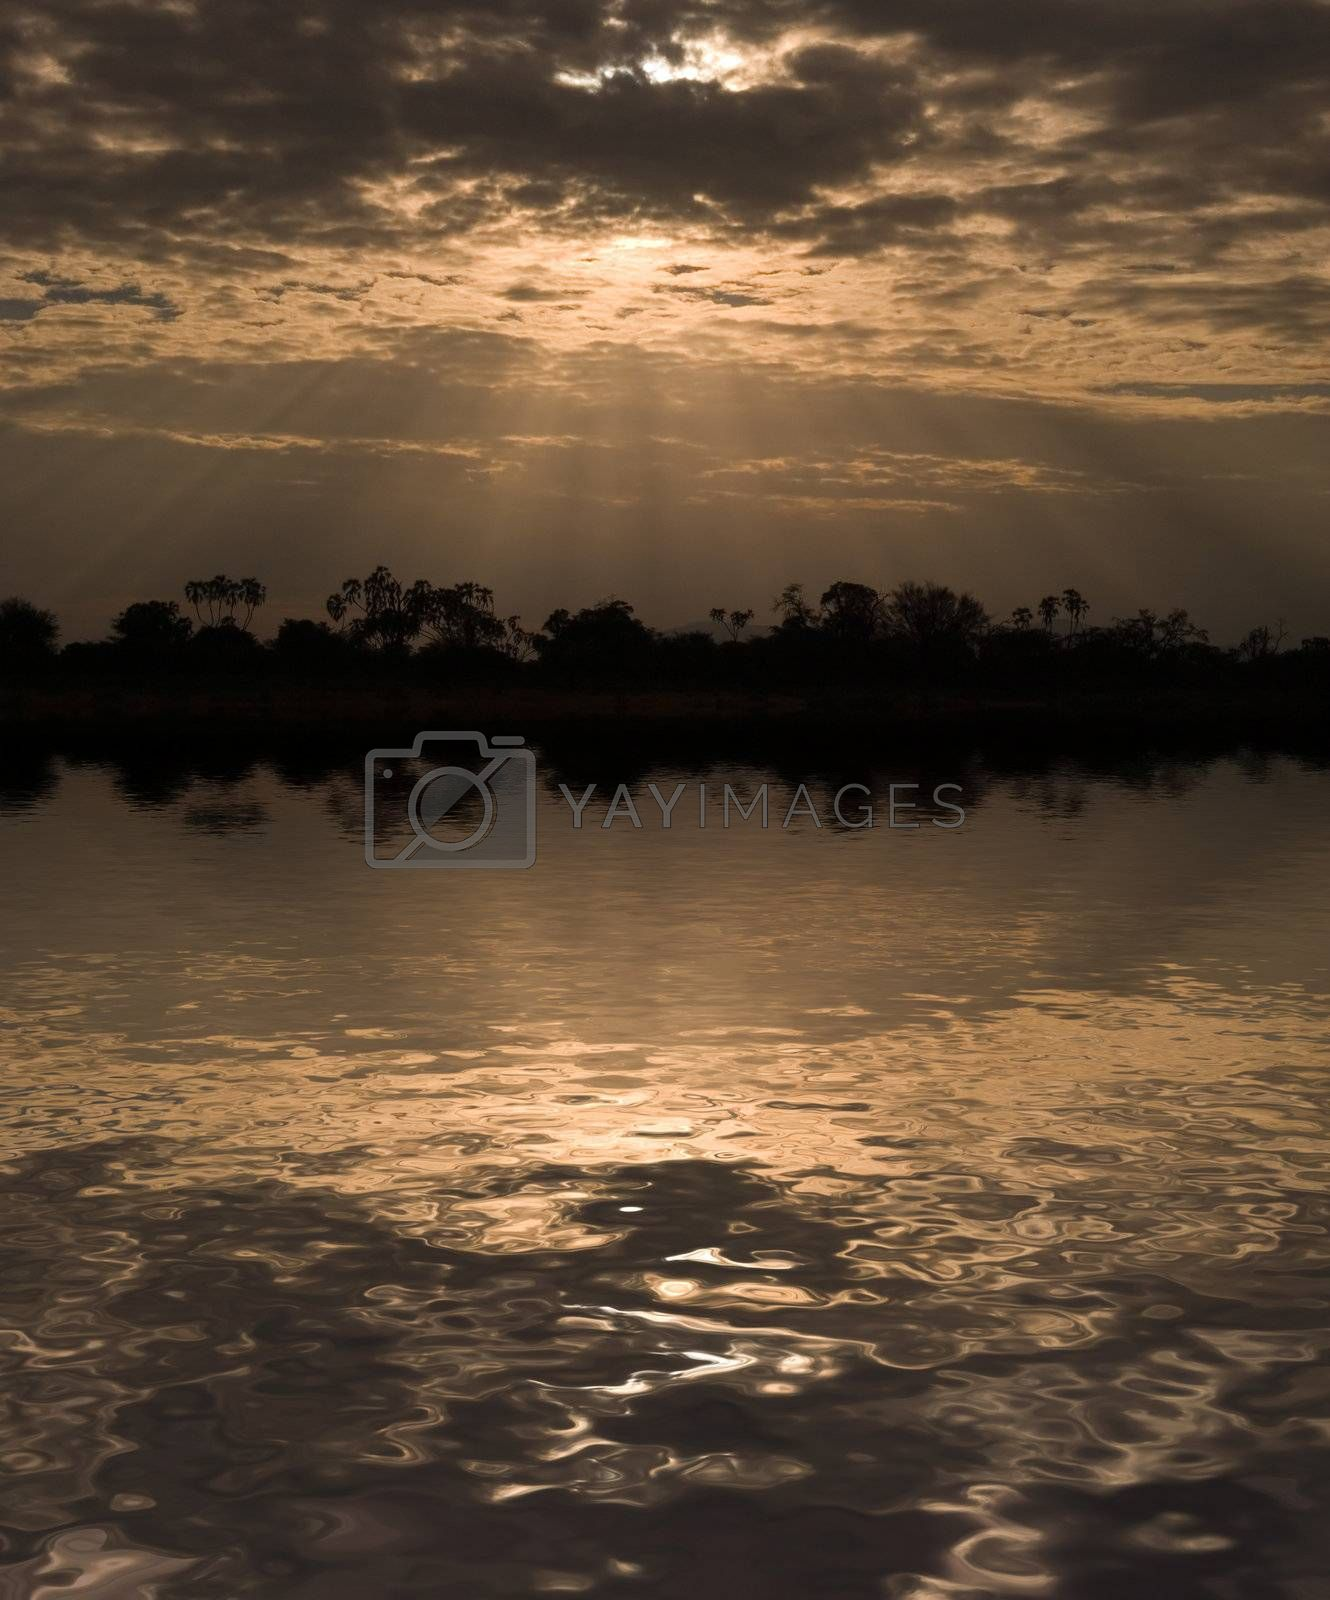 Royalty free image of Sun Rays by ajn